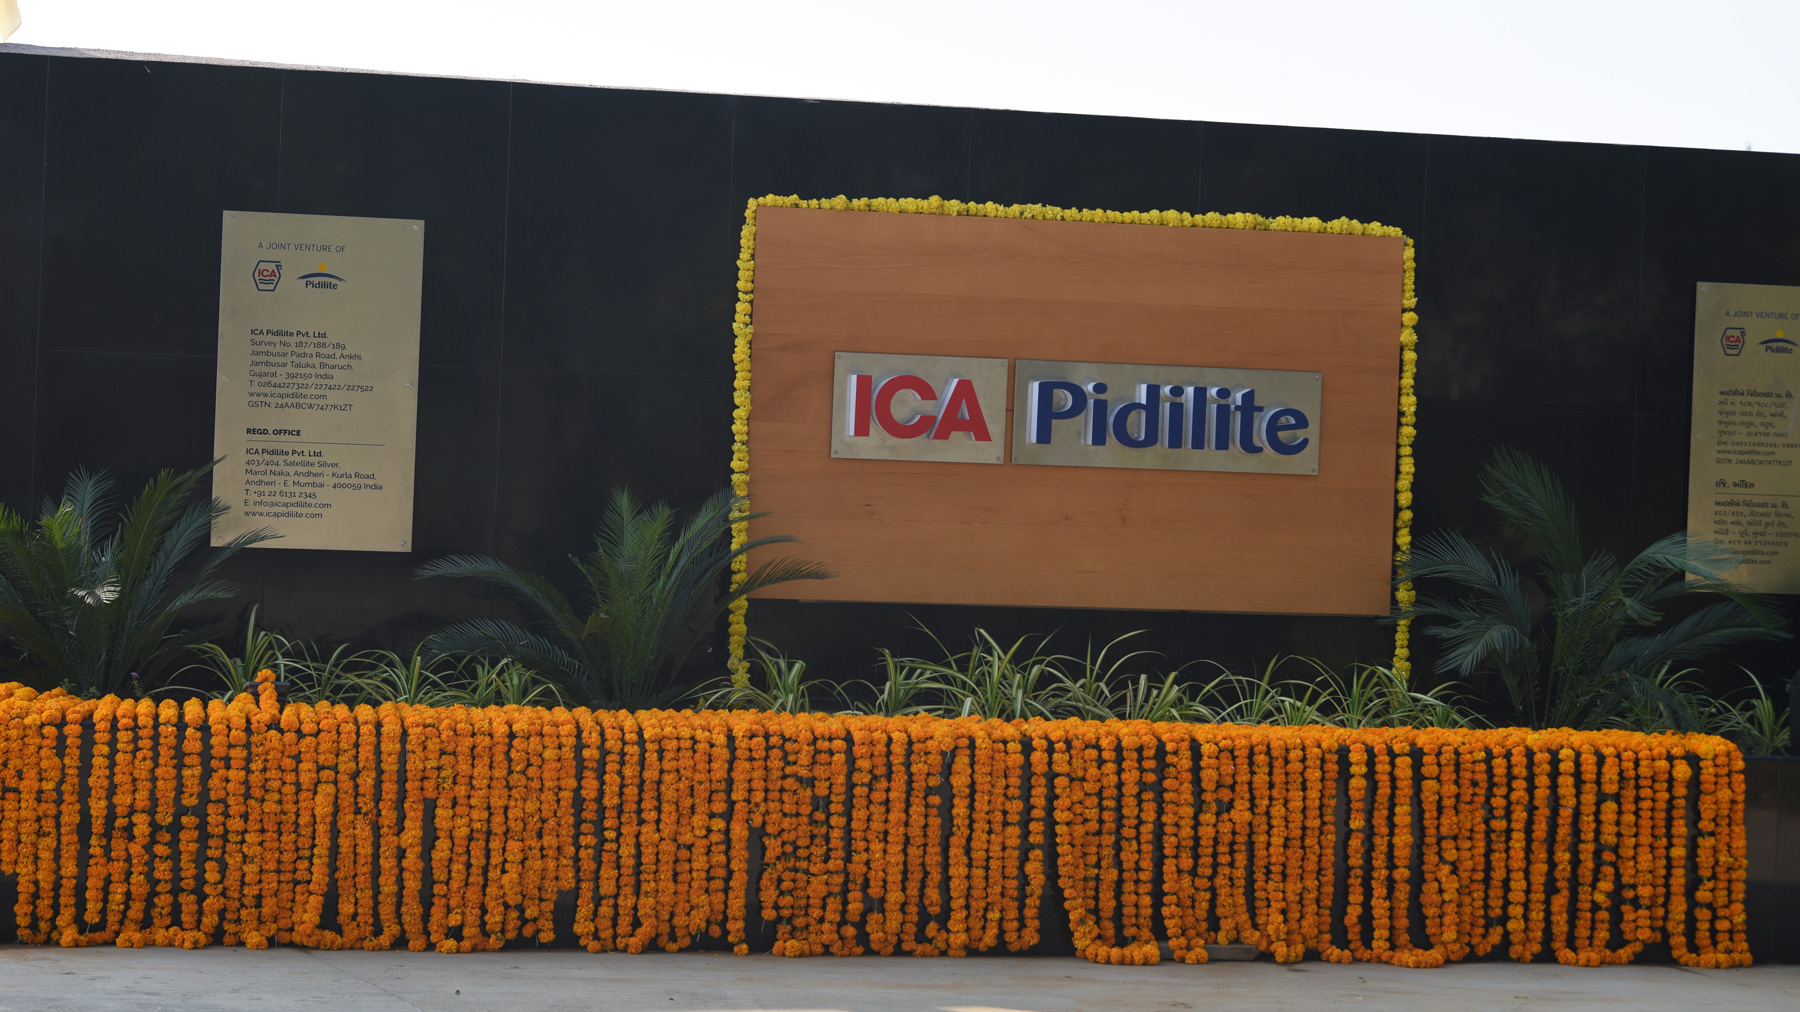 Ica Pidilite S New Manufacturing Plant Ica Group